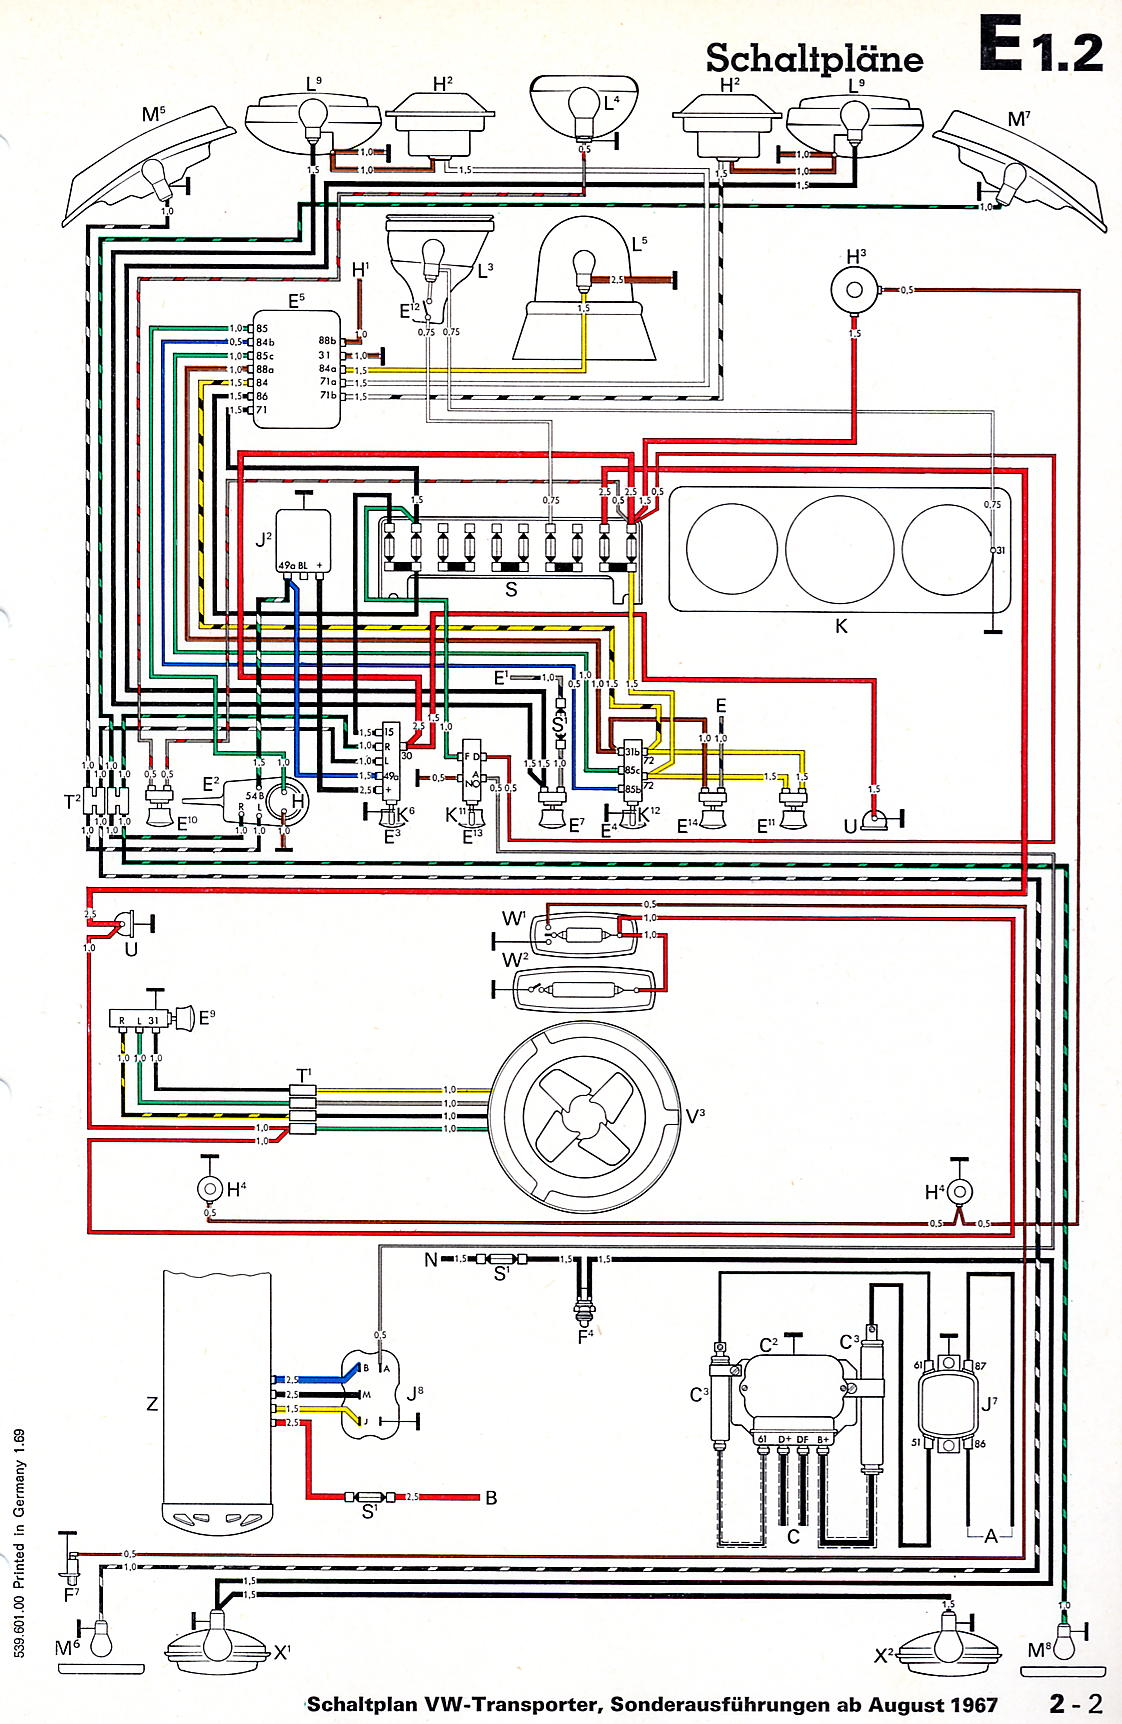 1978 vw bus wiring diagram how to wire 220 volt outlet diagrams 1 2